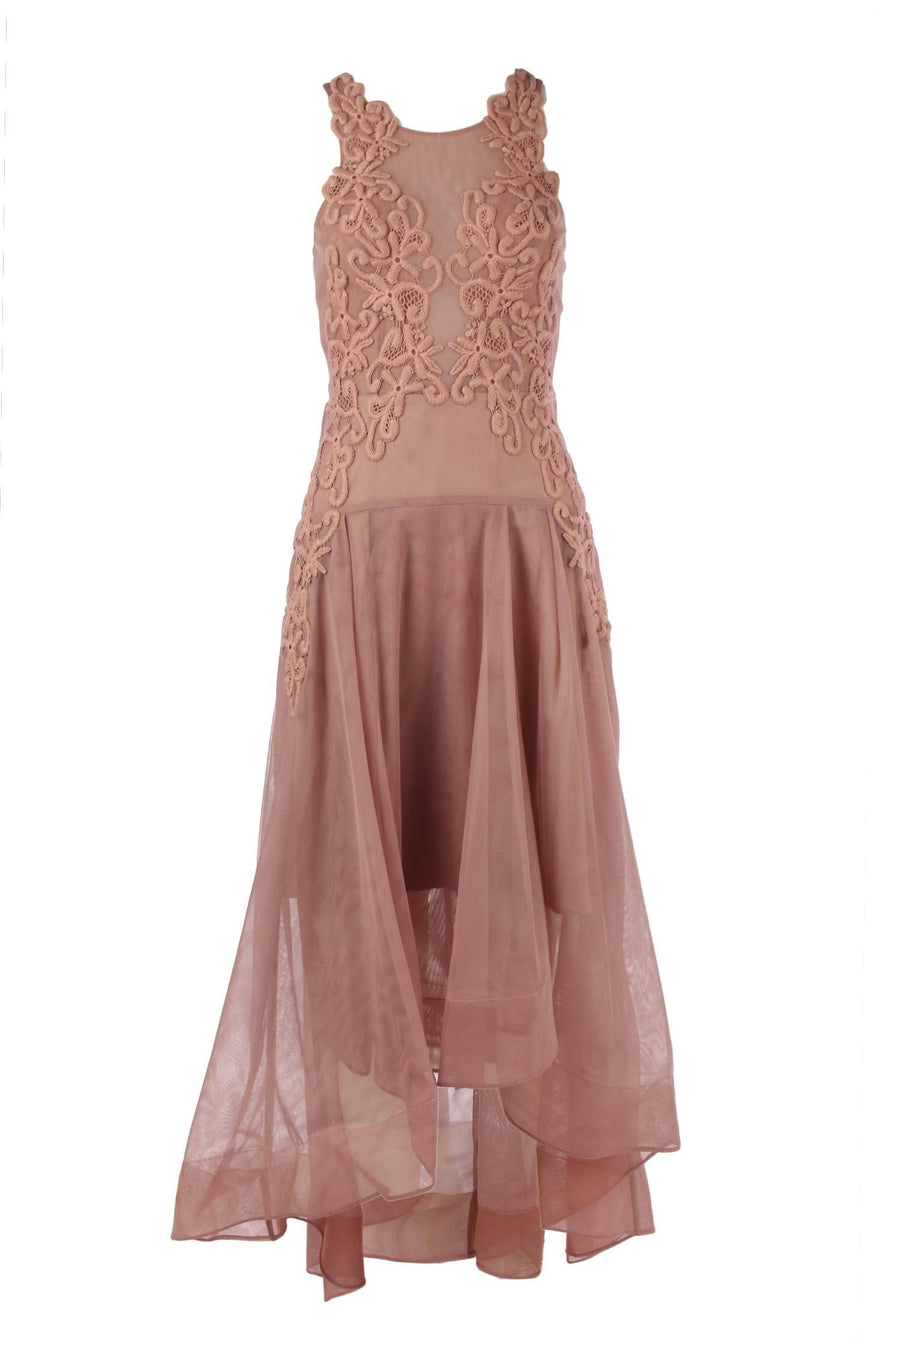 Paris Dress in Dusty Pink